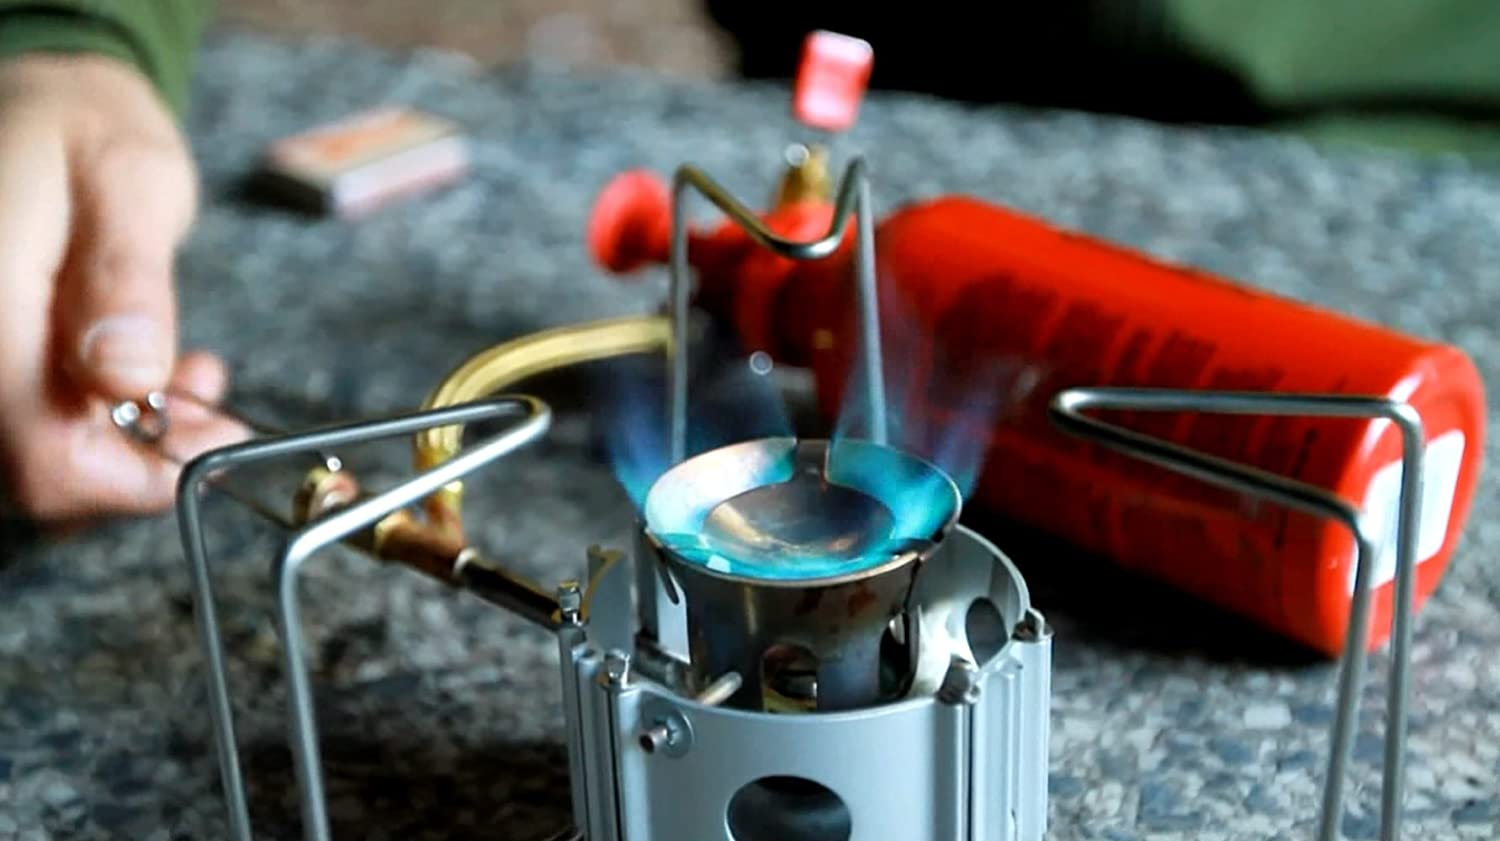 Boiling water is the best way to ensure water is safe to drink. The MSR Dragonfly coupled with a pot is a great option in an emergency or in the backcountry. It runs on kerosene, white gas, diesel, and unleaded.